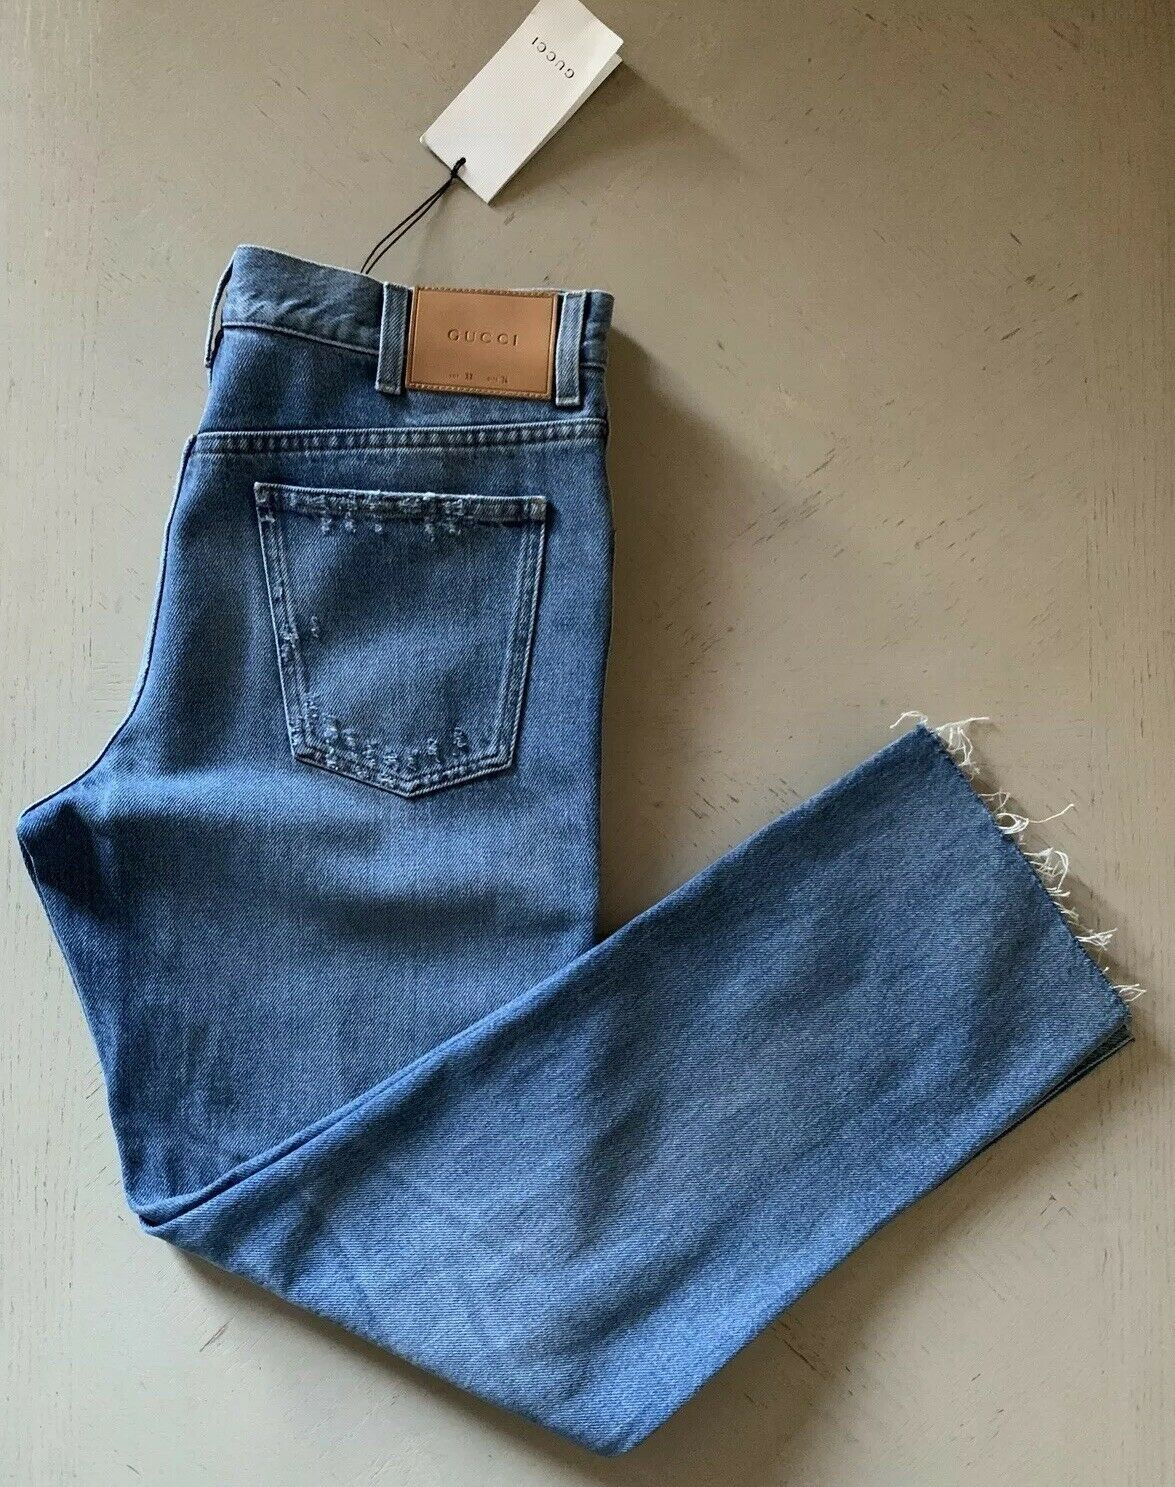 New $935 Gucci Mens Jeans Pants LT Blue 34 US Made in Italy